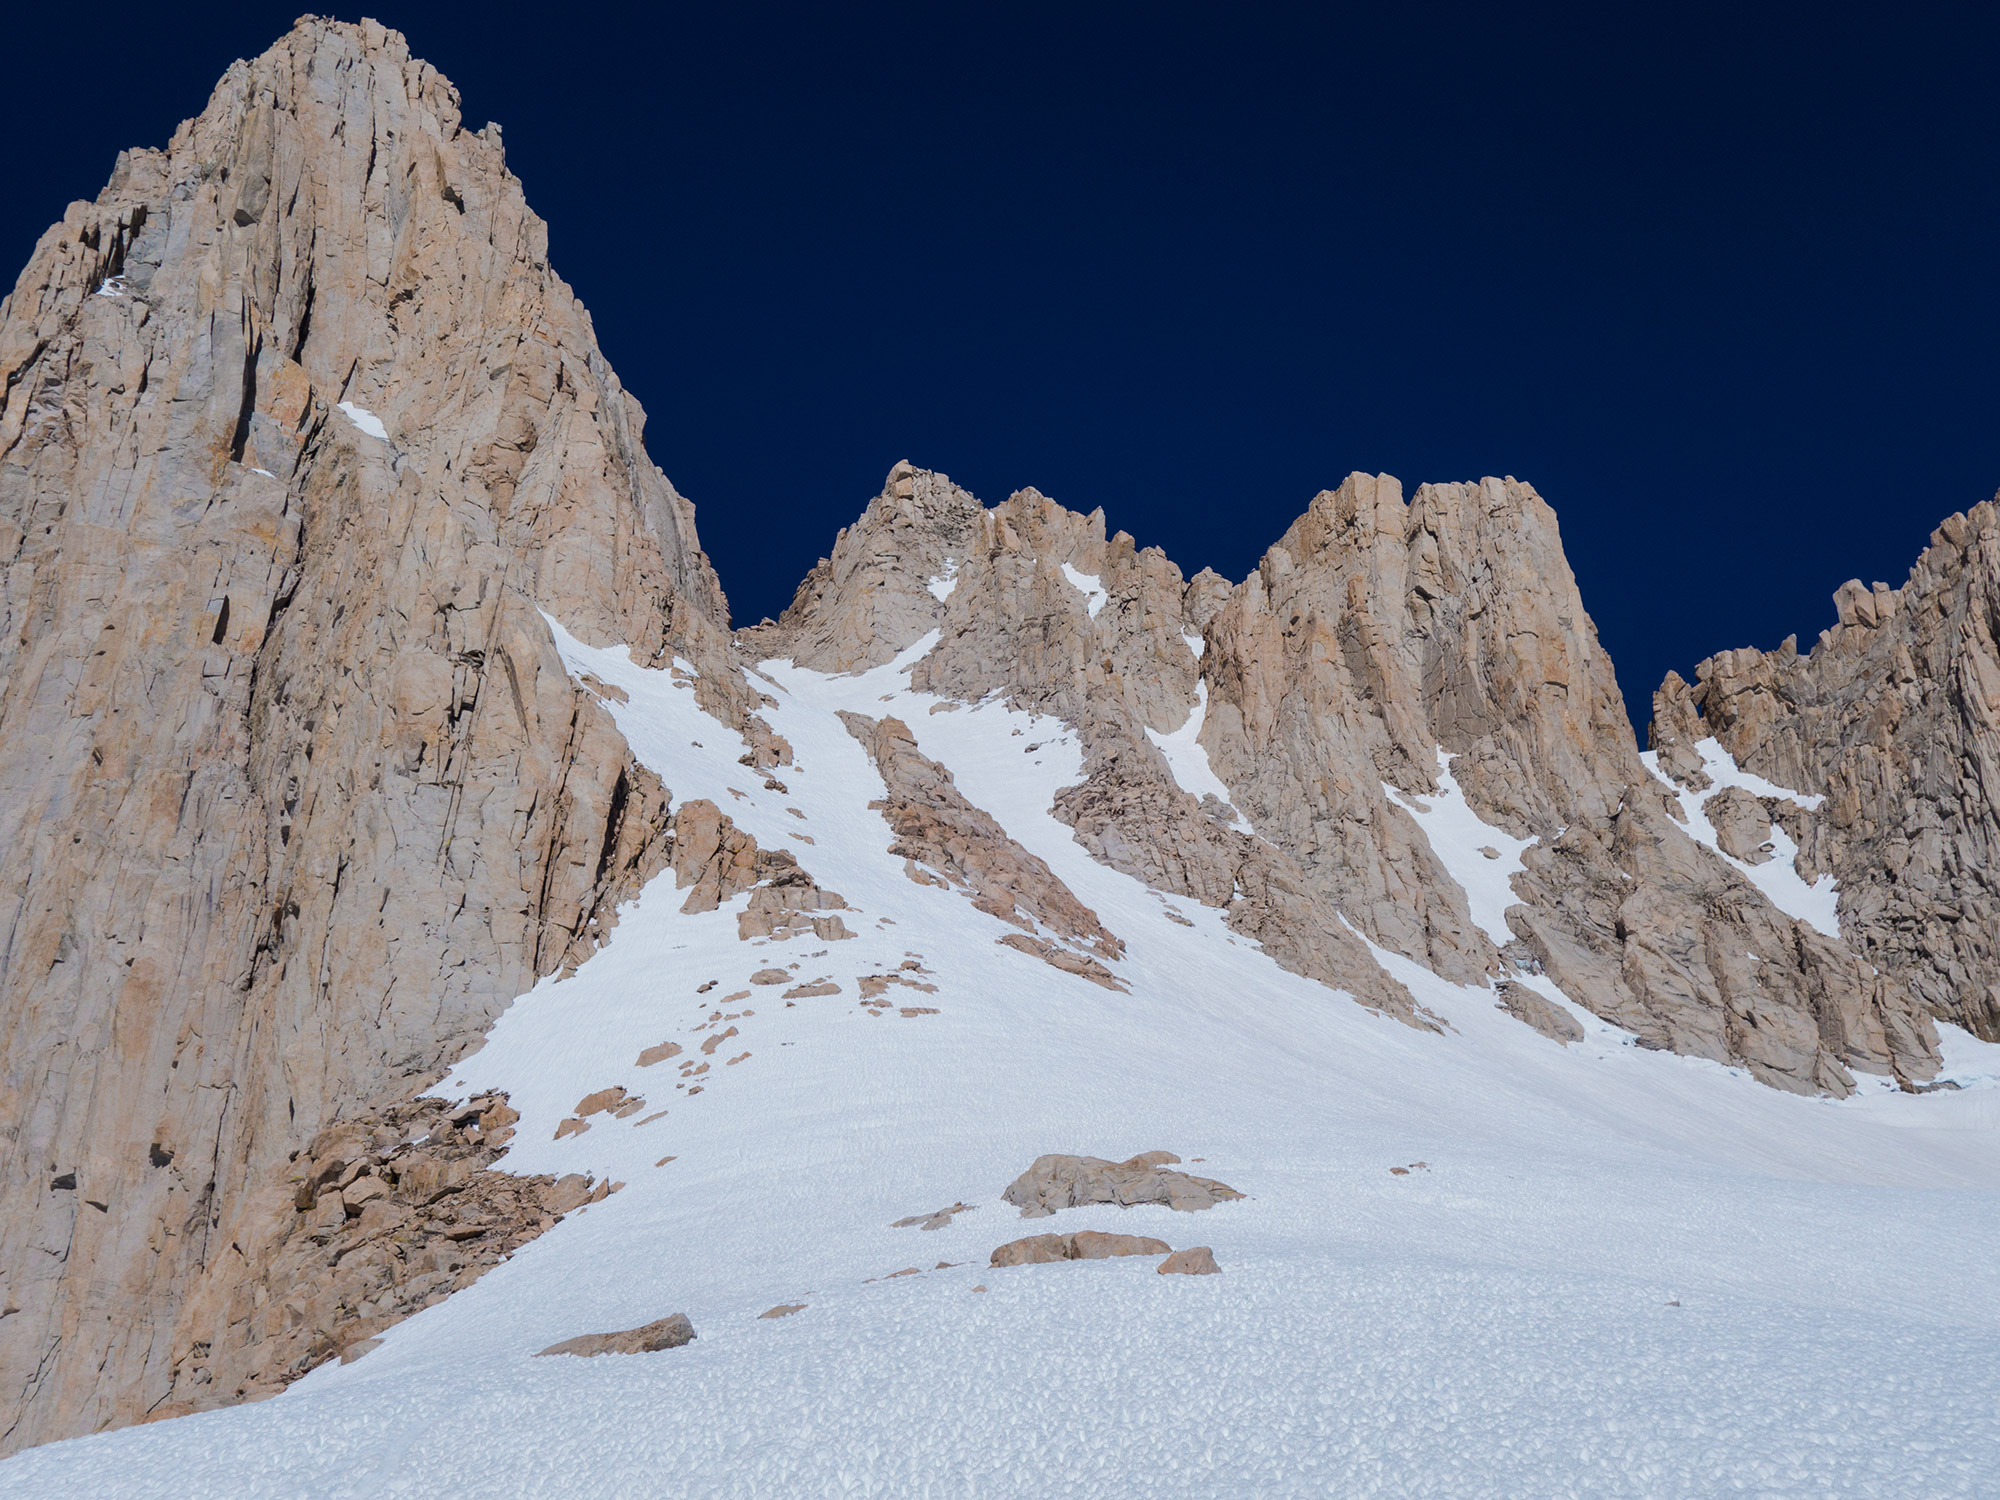 The Mountaineer's Route is the first large snow gully to the right of the summit pinnacle. | Credit: Ryan Wichelns